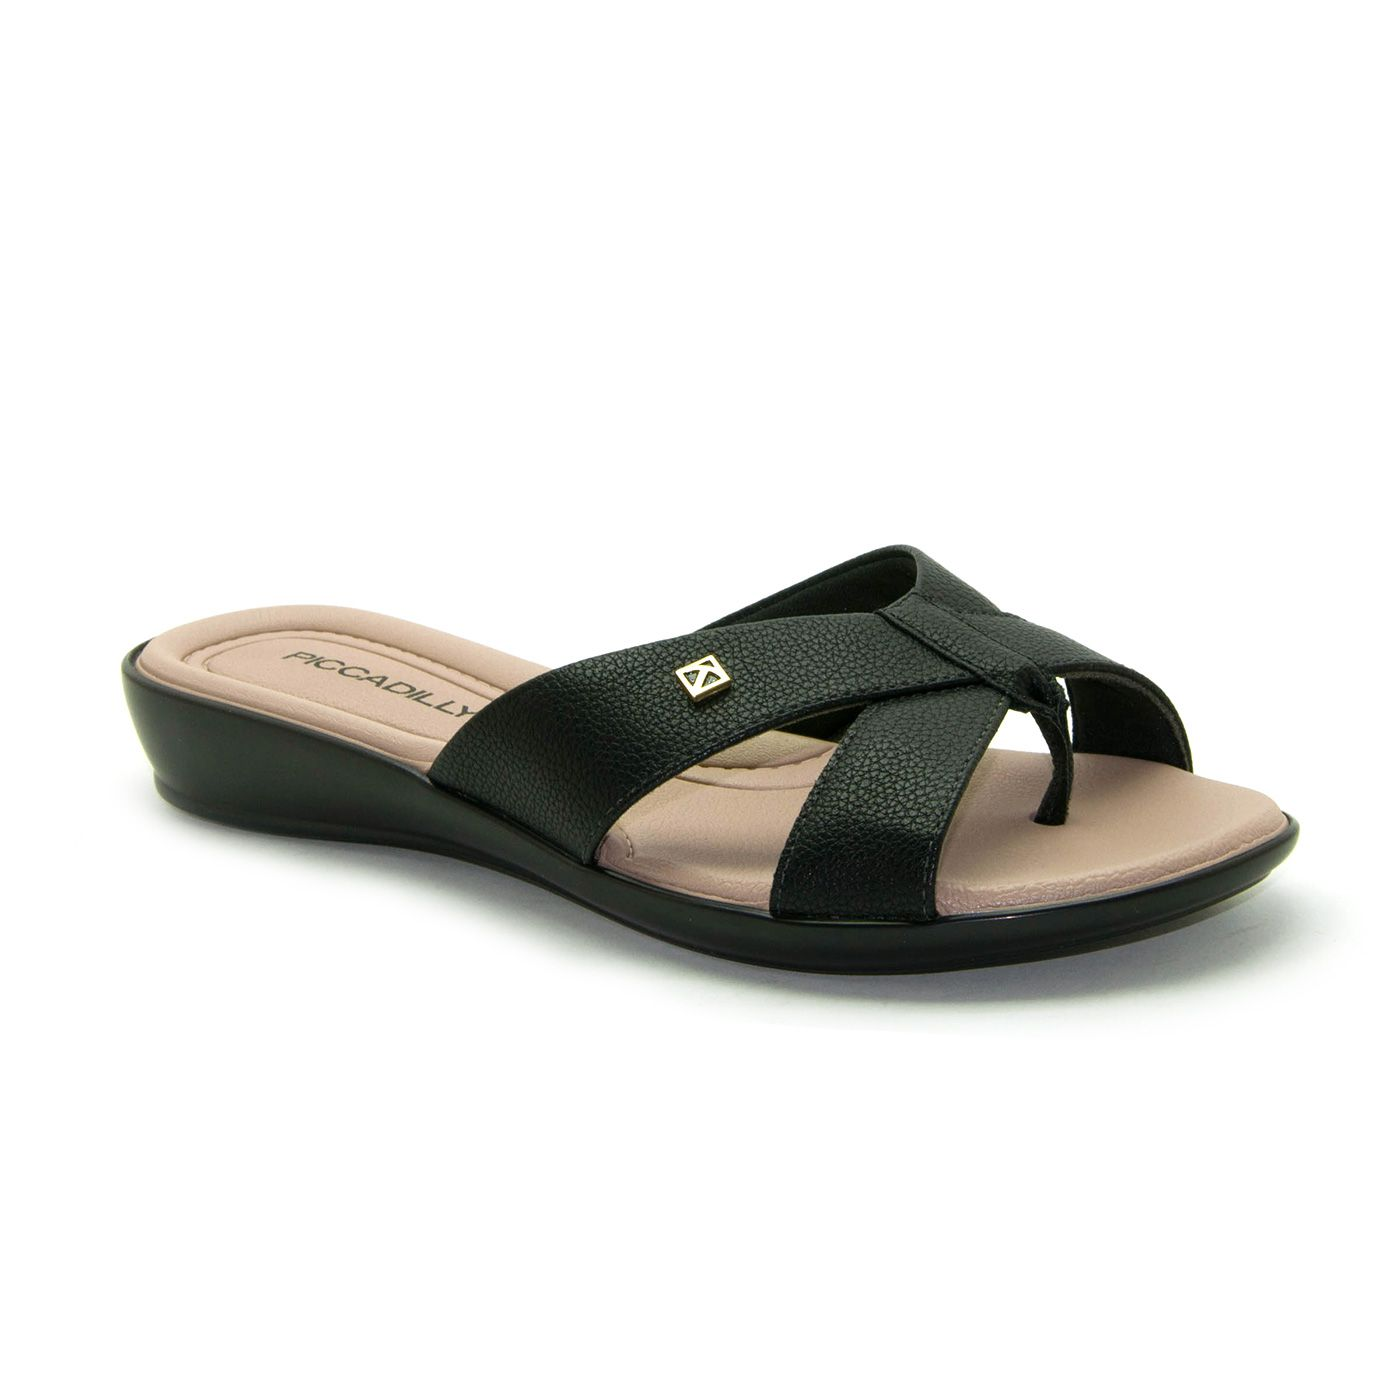 CHINELO PICCADILLY COM PINGENTE - 500211